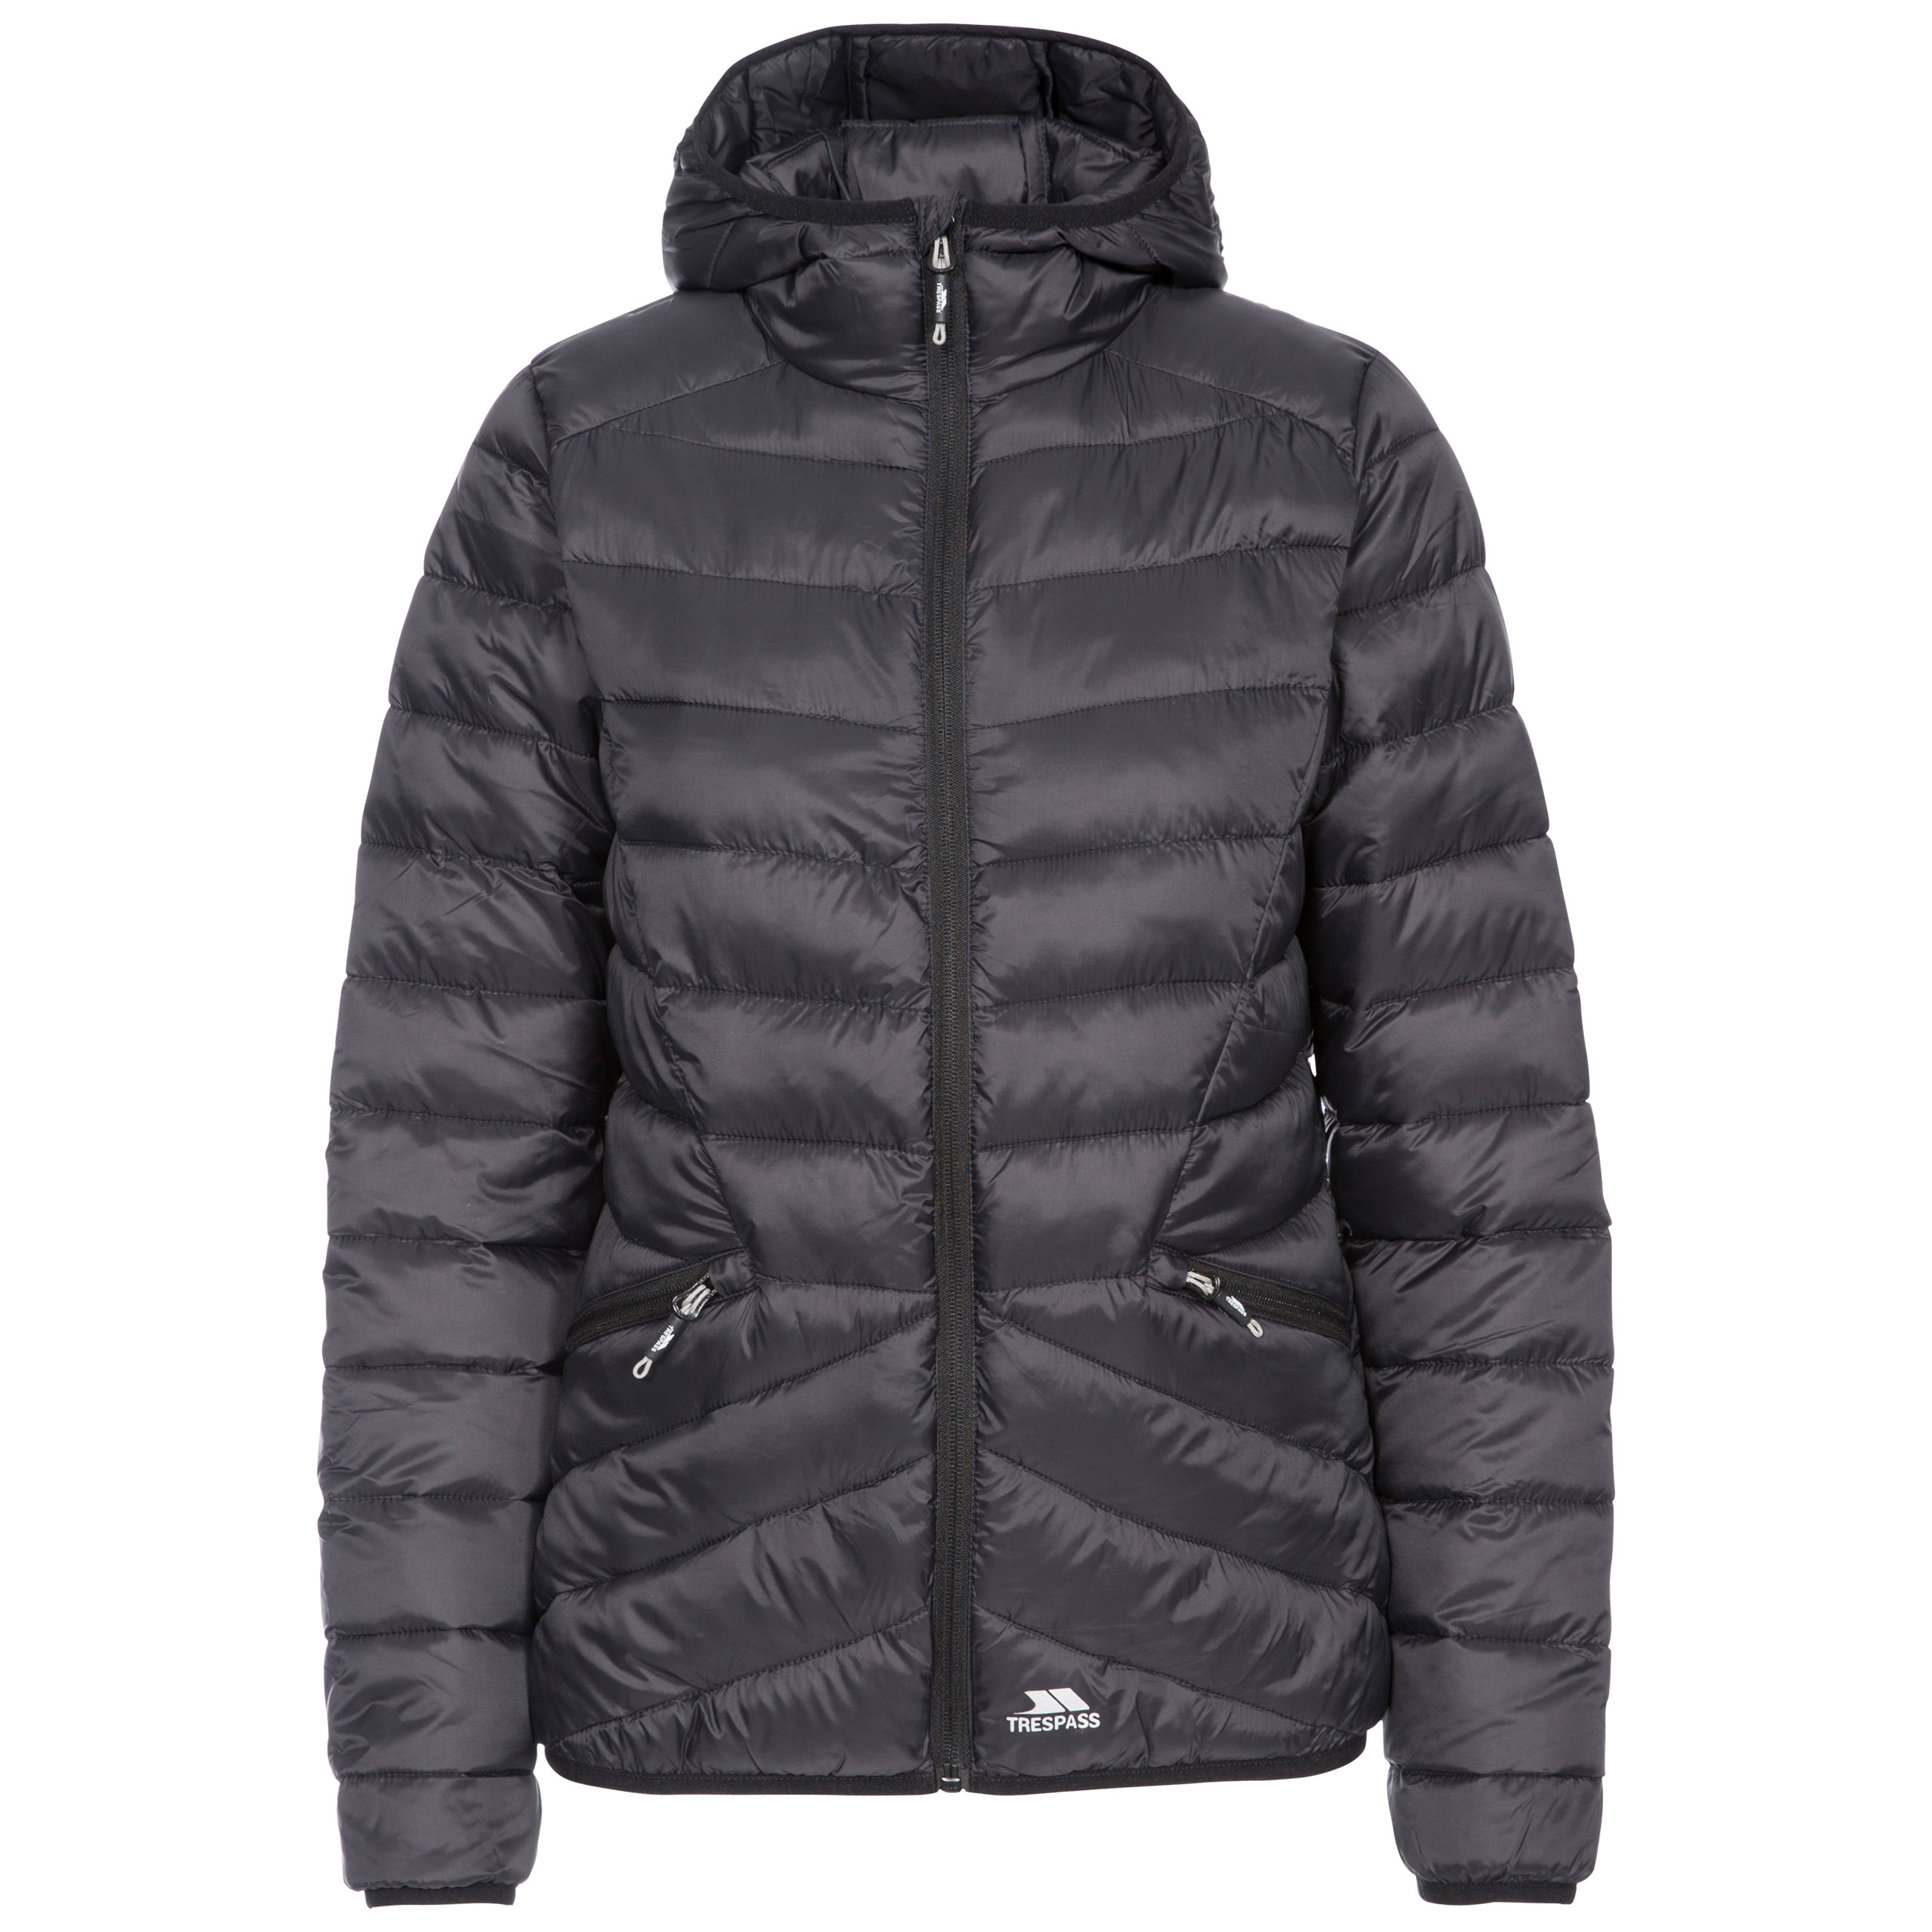 Trespass-Alyssa-Womens-Padded-Jacket-Puffer-With-Hood-For-Ladies thumbnail 15